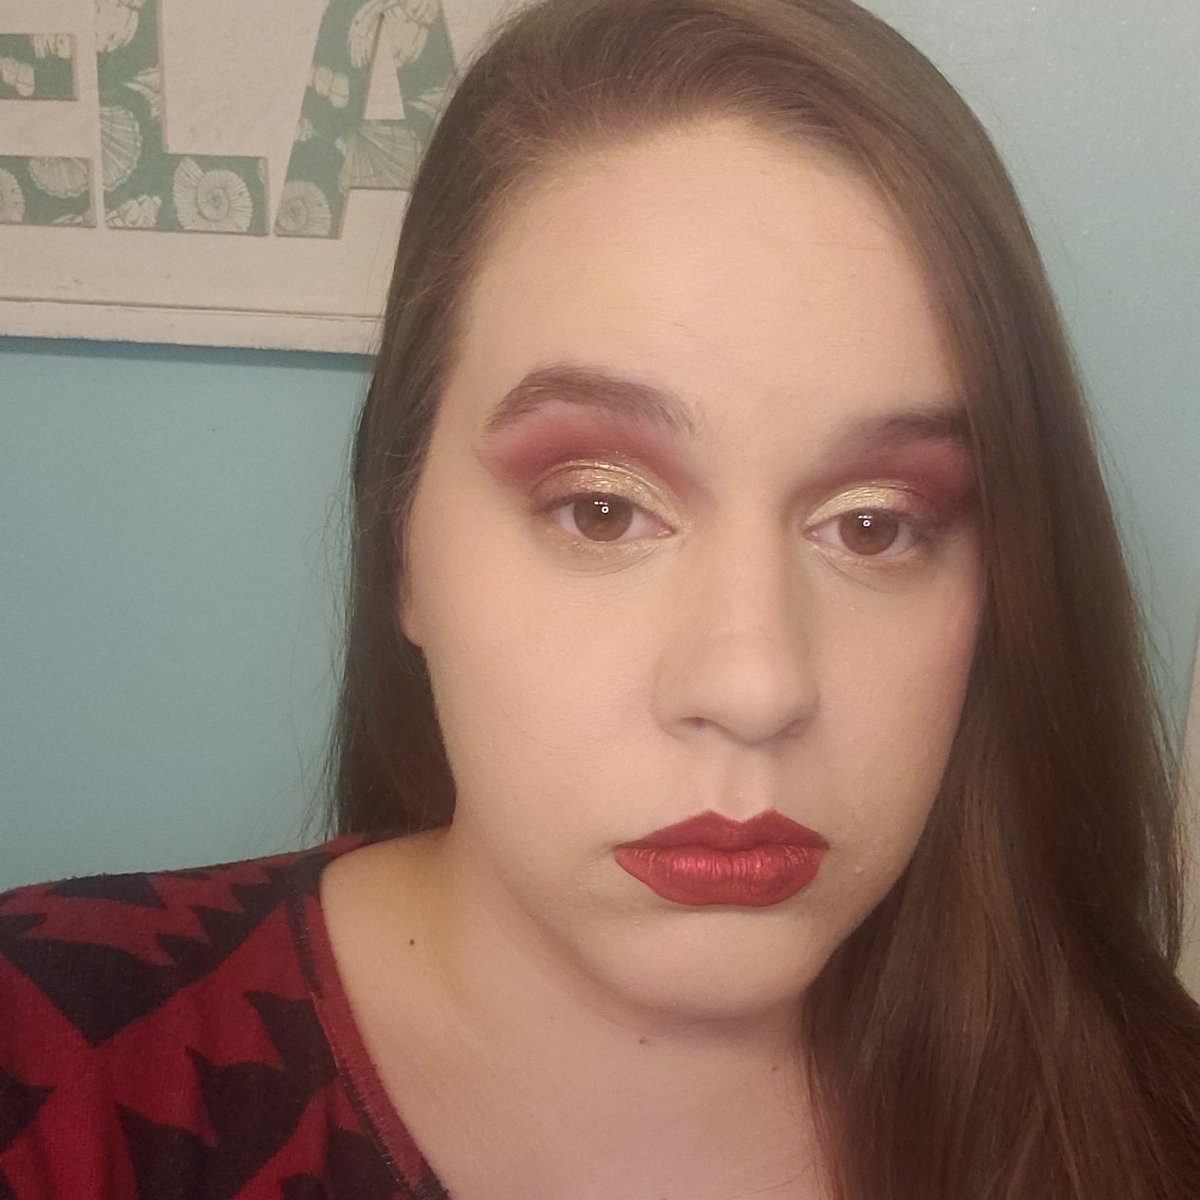 Forgot to post my #Xmasmakeup but was loving this gold on red! #makeuprevolution #abhmodernren #limecrime #abh #liquidlipstick #undiscoveredmuapic.twitter.com/9DcIXOXhaD